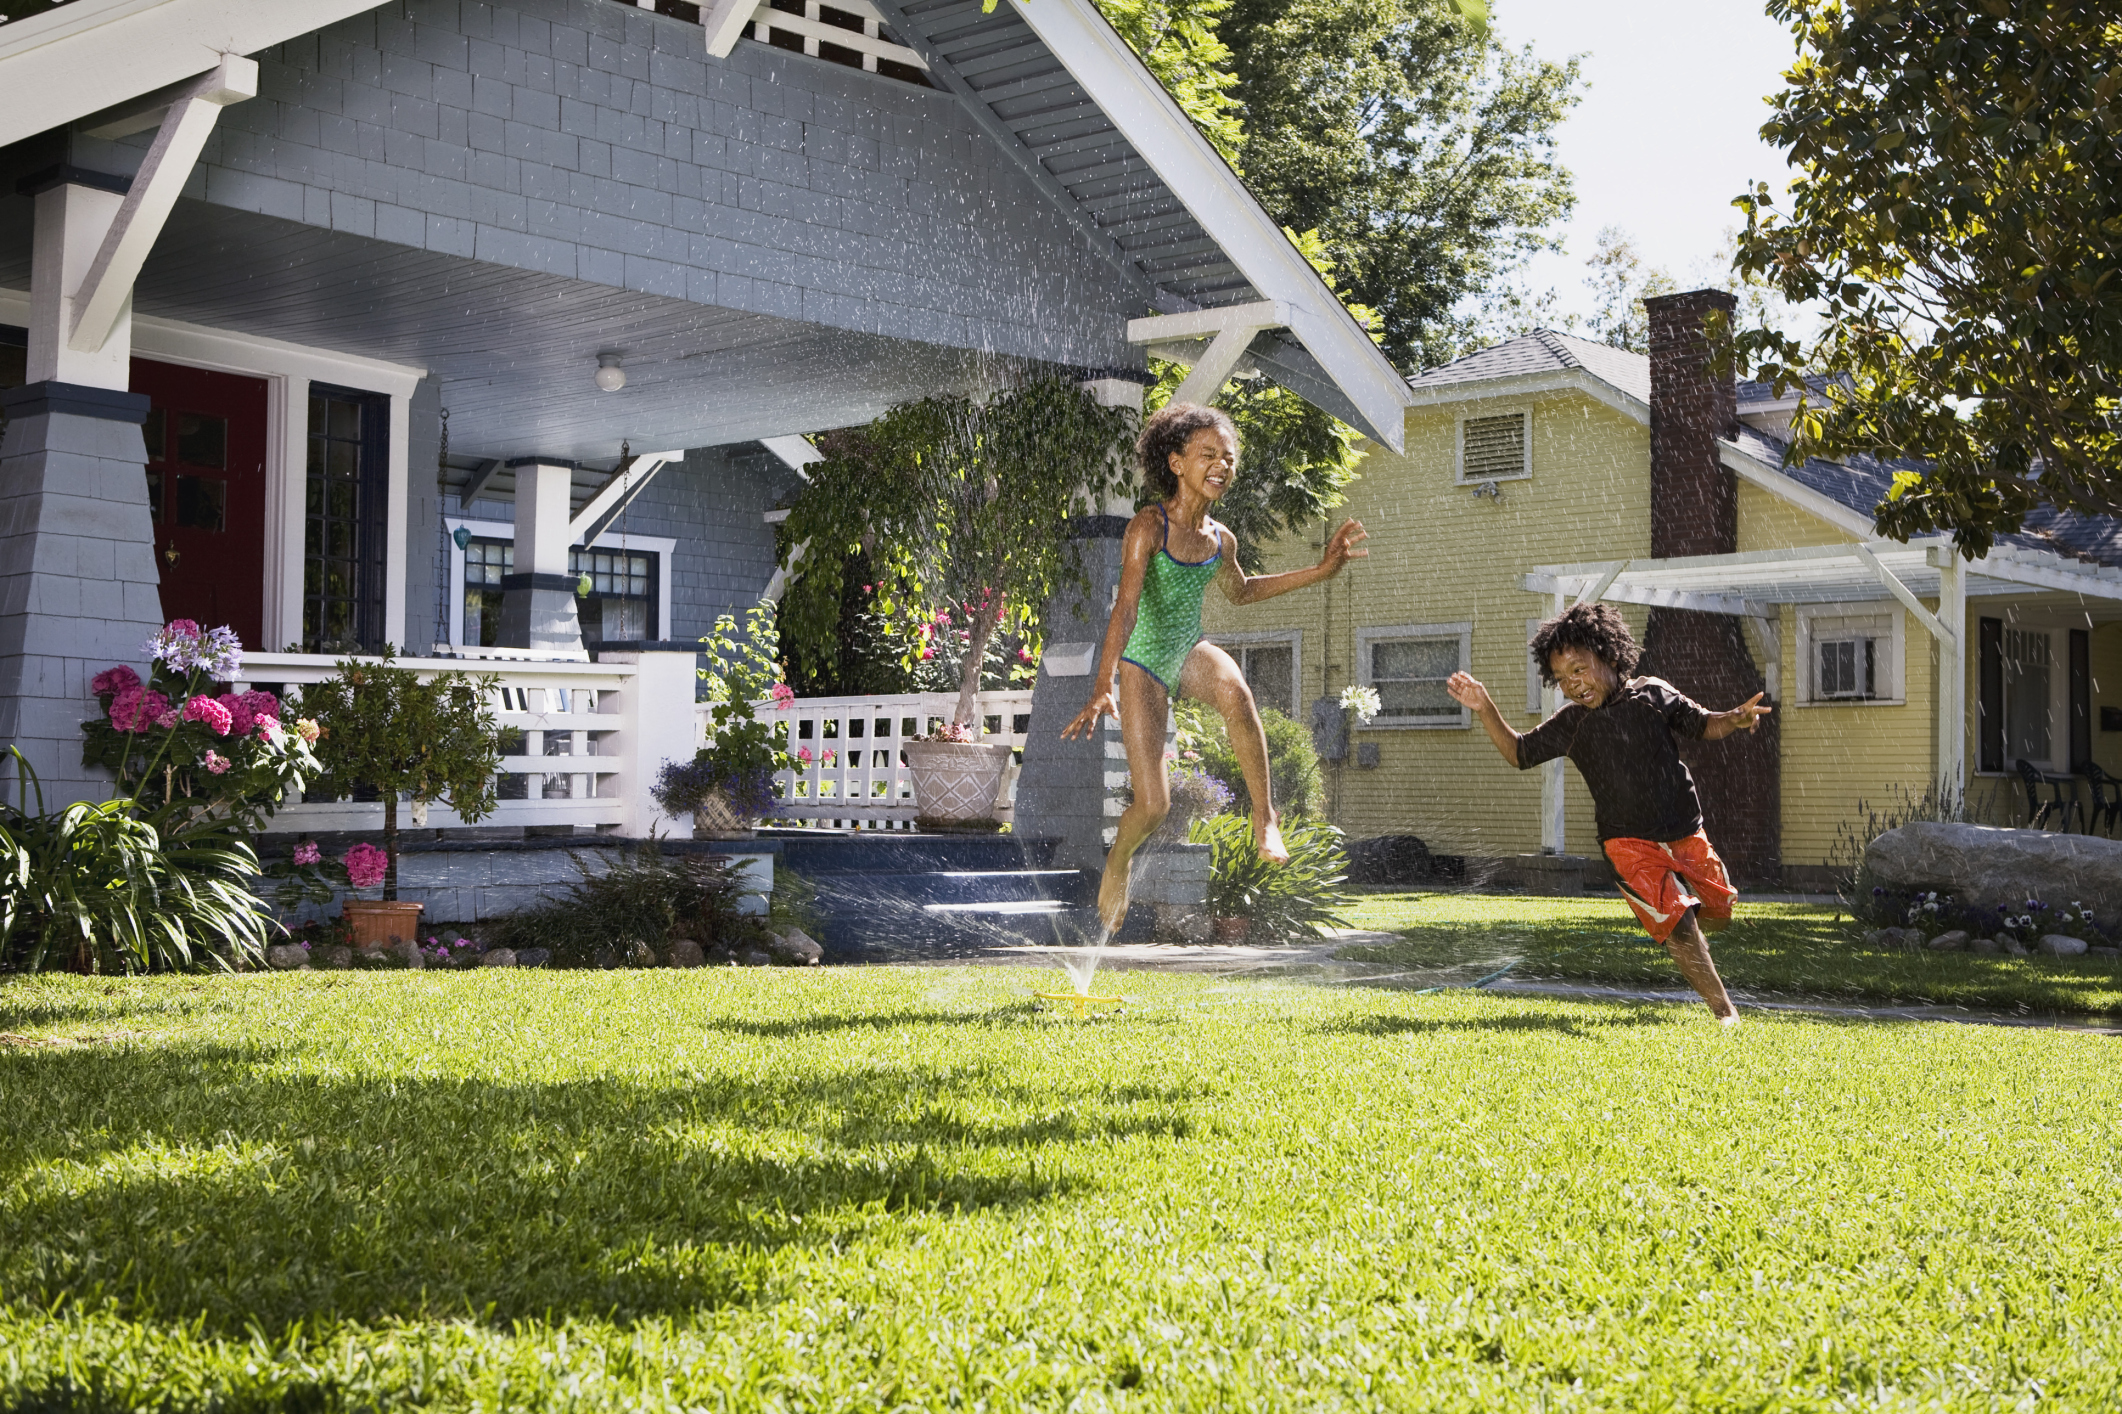 How to Change Hunter Lawn Irrigation Sprinkler Heads | Home